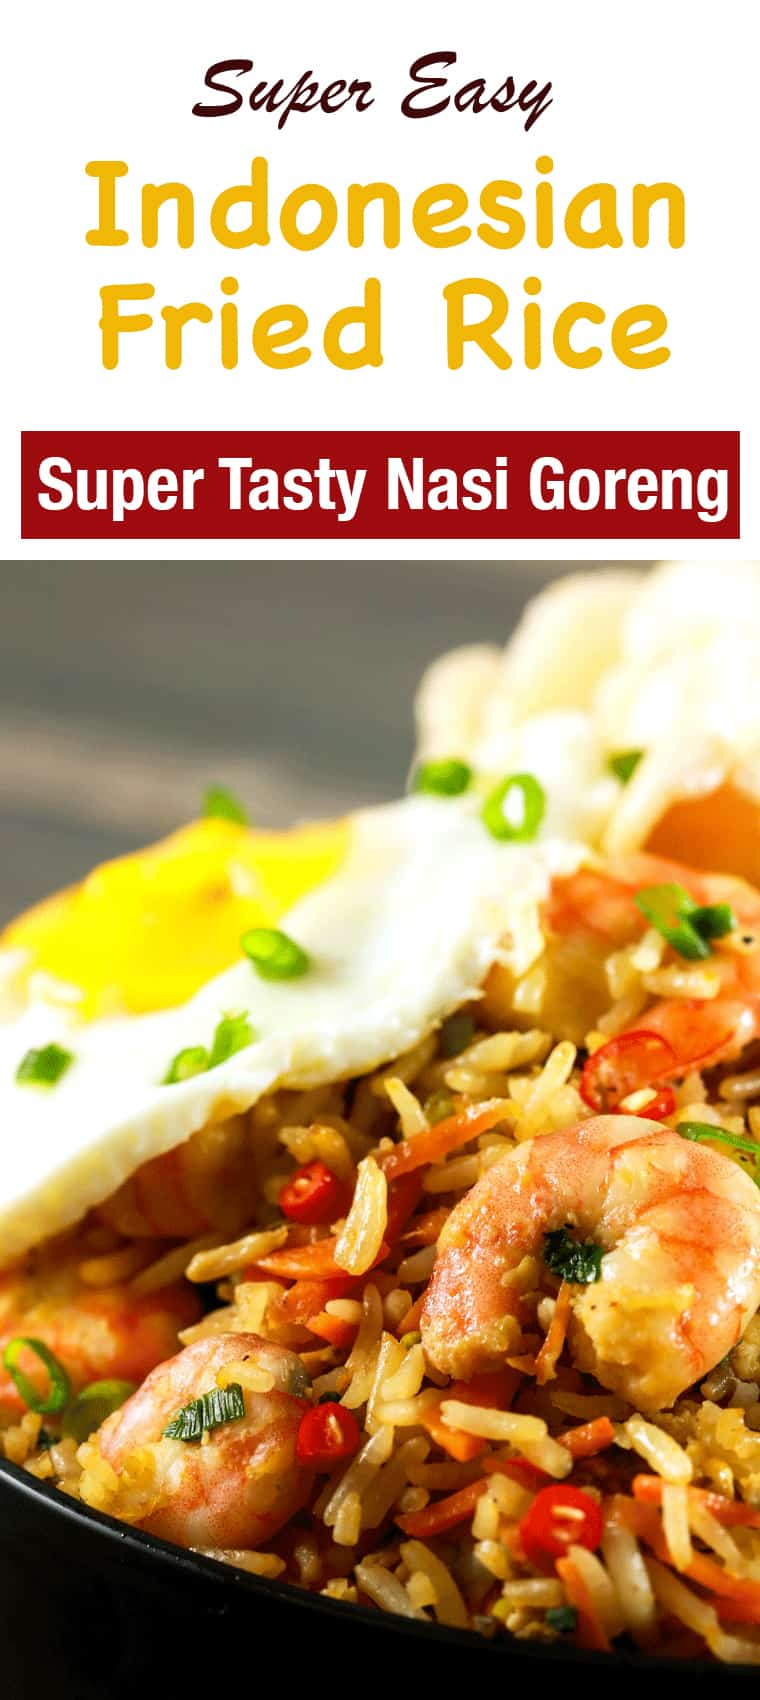 Spicy Indonesian Fried Rice Shrimp Nasi Goreng - Make this delicious spicy Indonesian fried rice in 15 minutes and amaze all your friends and family! It's literally bursting with flavors and is SO simple to make! It doesn't get better than this!! | ScrambledChefs.com